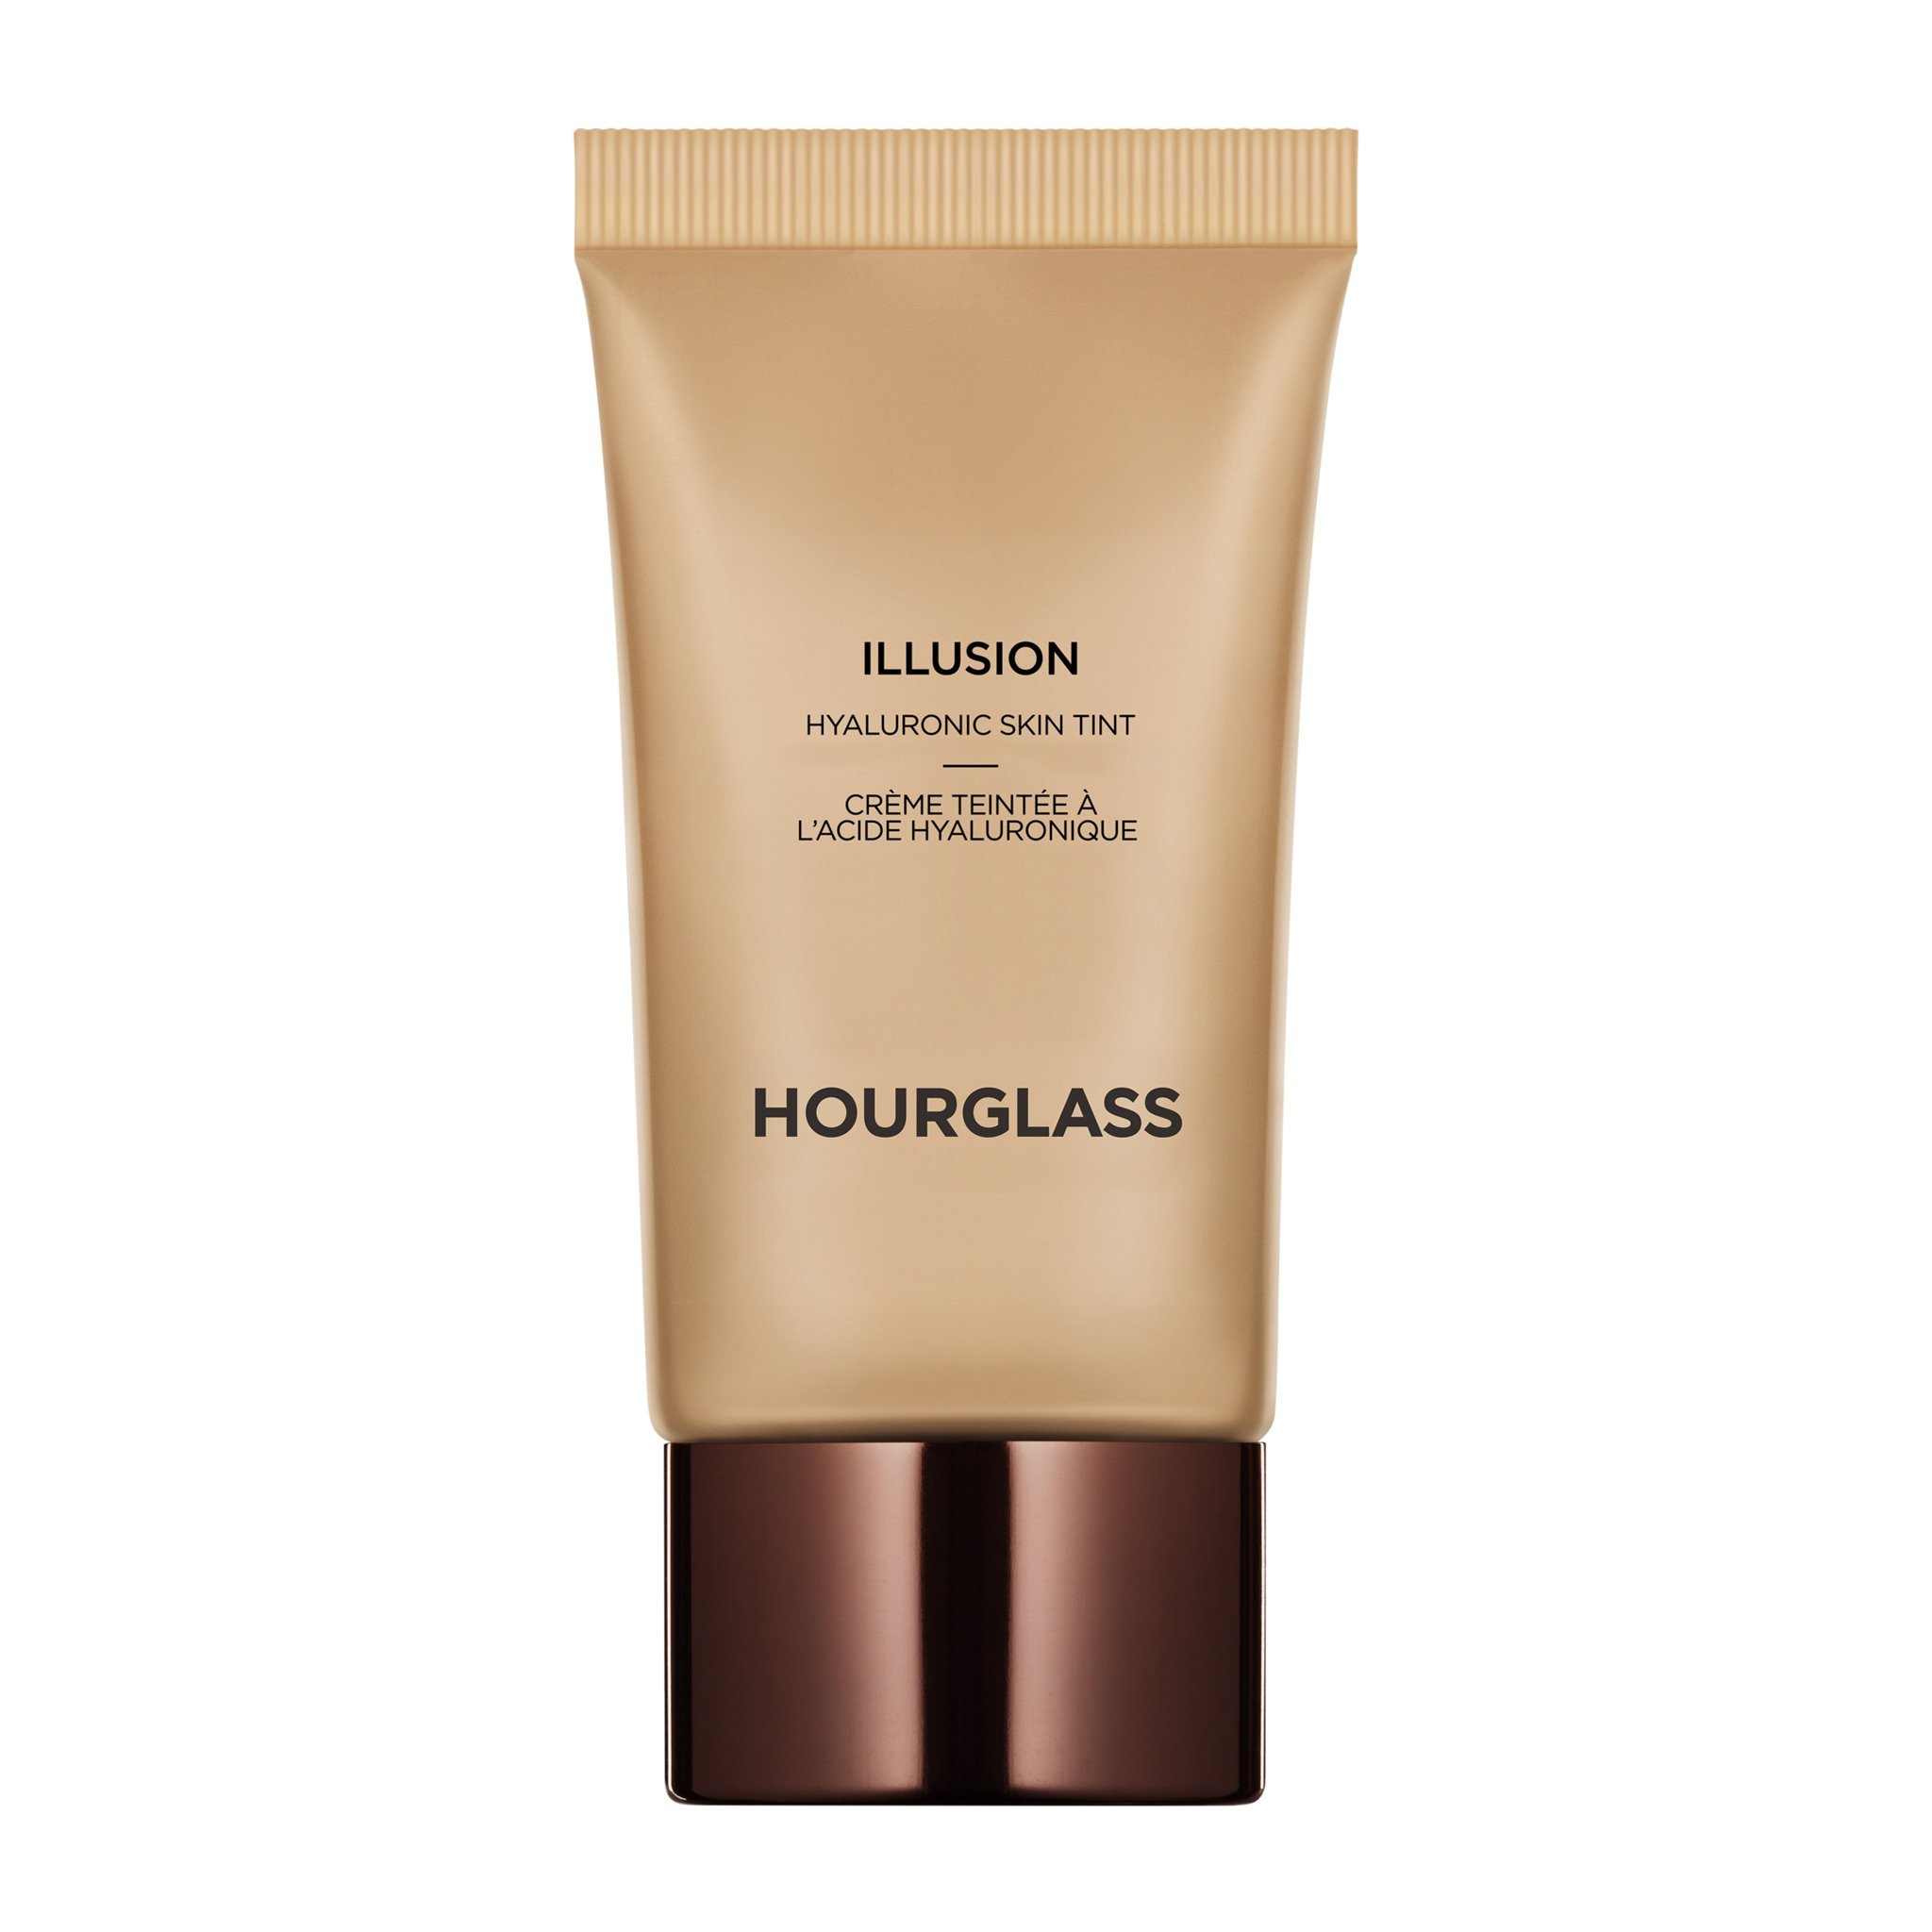 Hourglass Illusion® Hyaluronic Skin Tint (Light Beige)